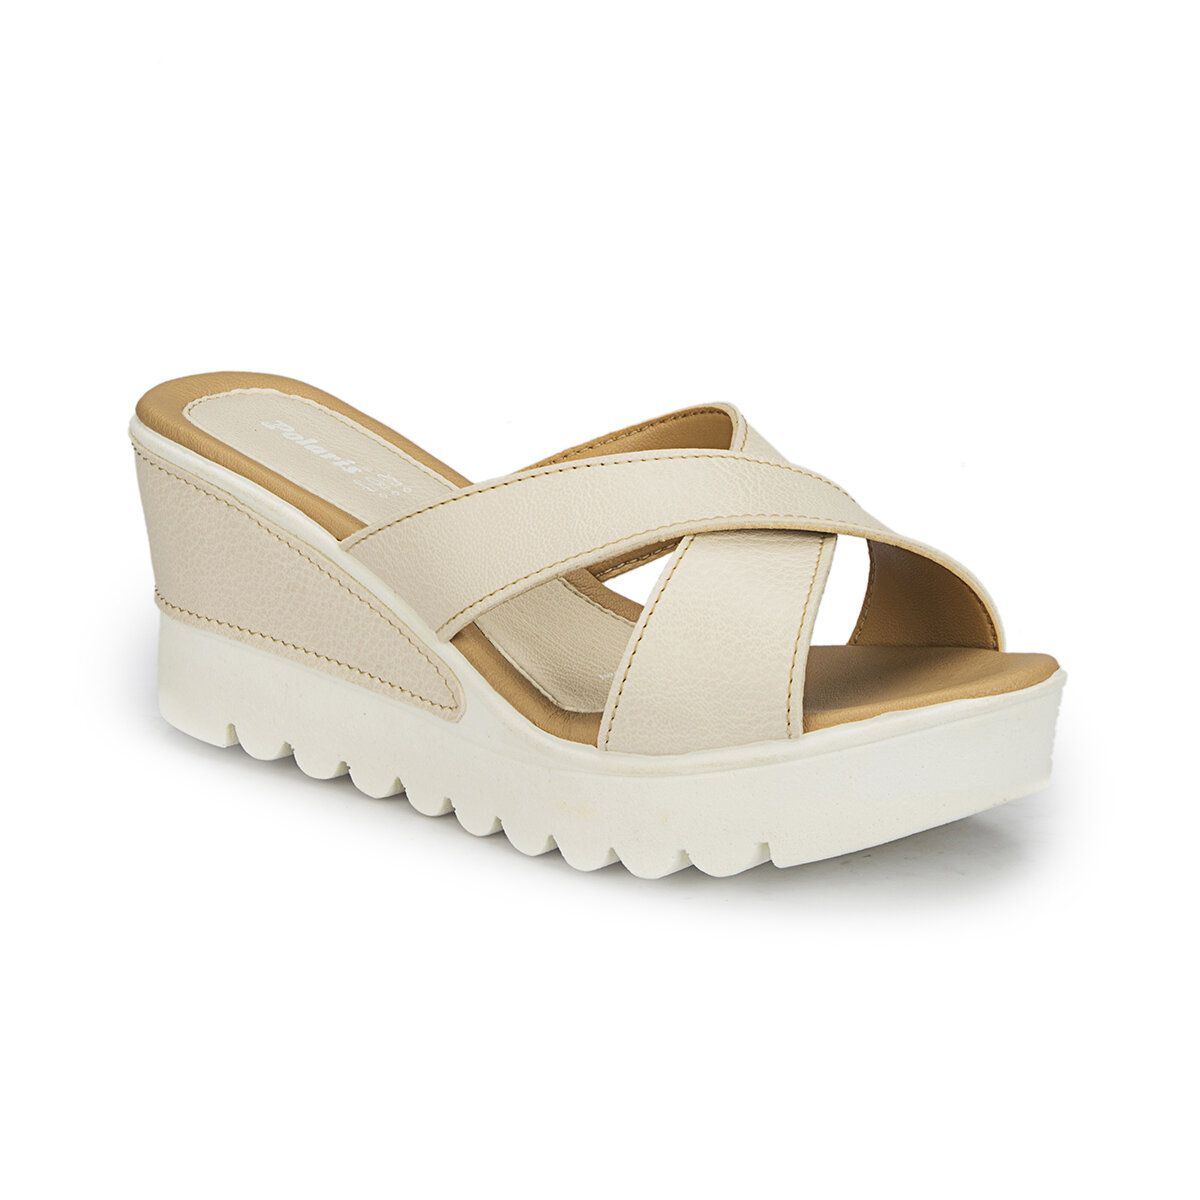 FLO 81. 308494.Z Beige Women 'S Wedges Slippers Polaris